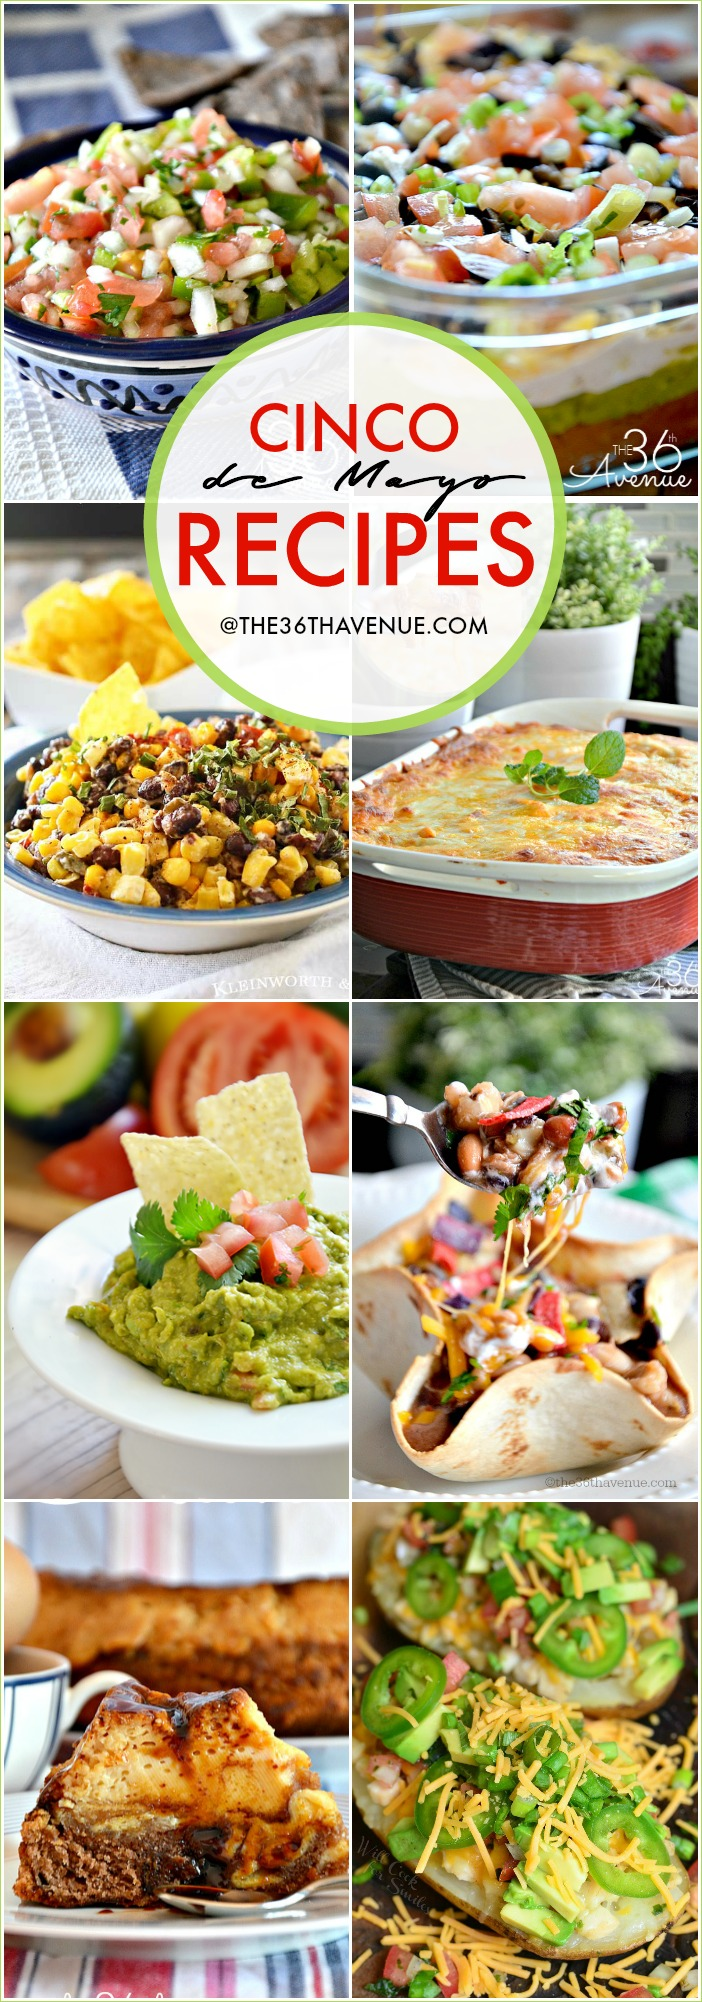 Cinco de Mayo Recipes the36thavenue.com